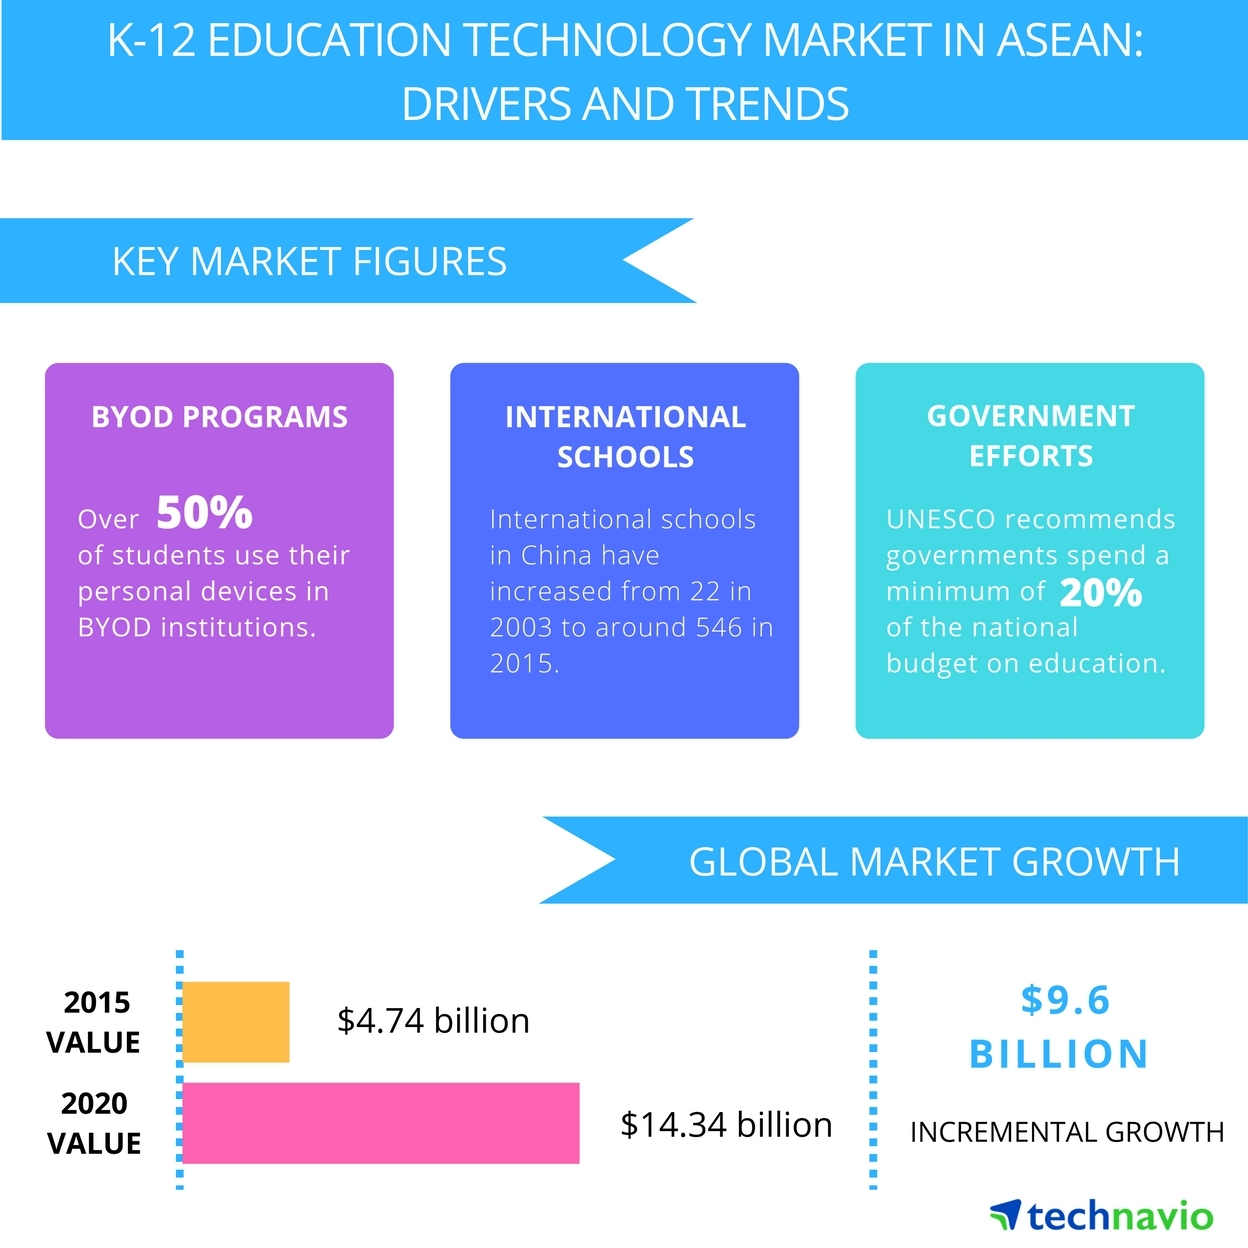 Trends In Education 2020.Top 3 Trends Impacting The K 12 Education Technology Market